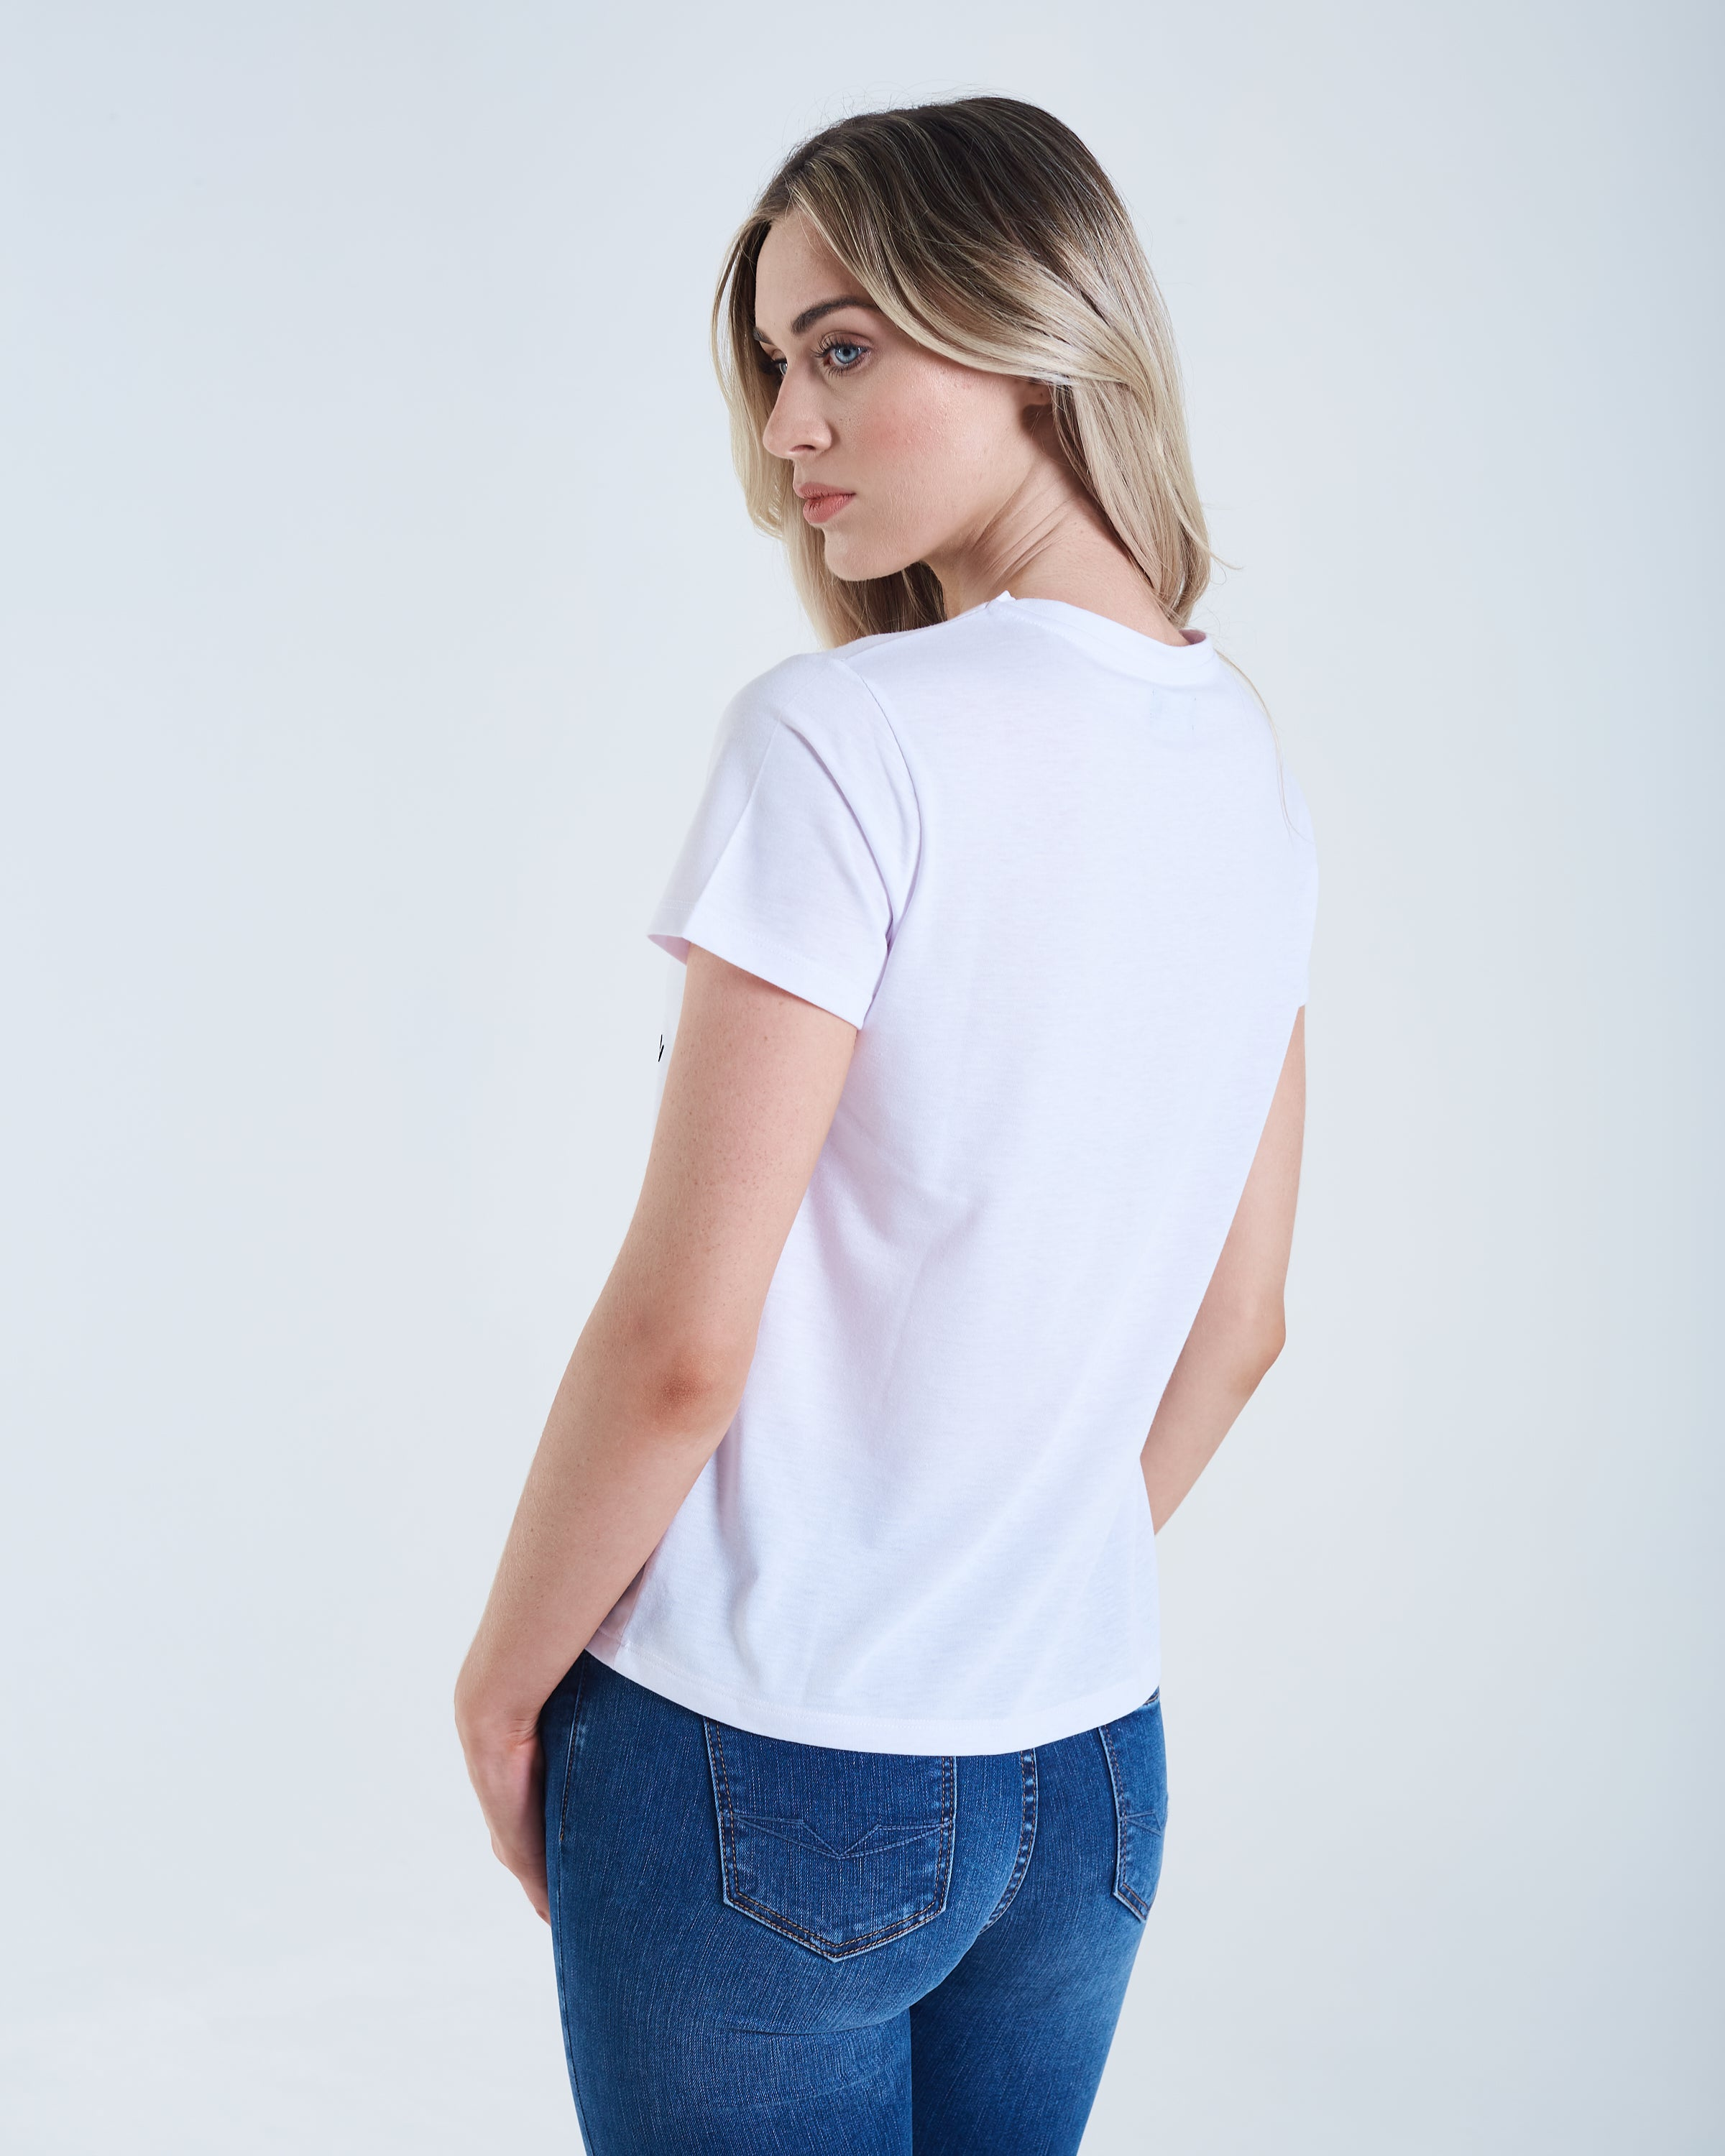 Zara T-Shirt White